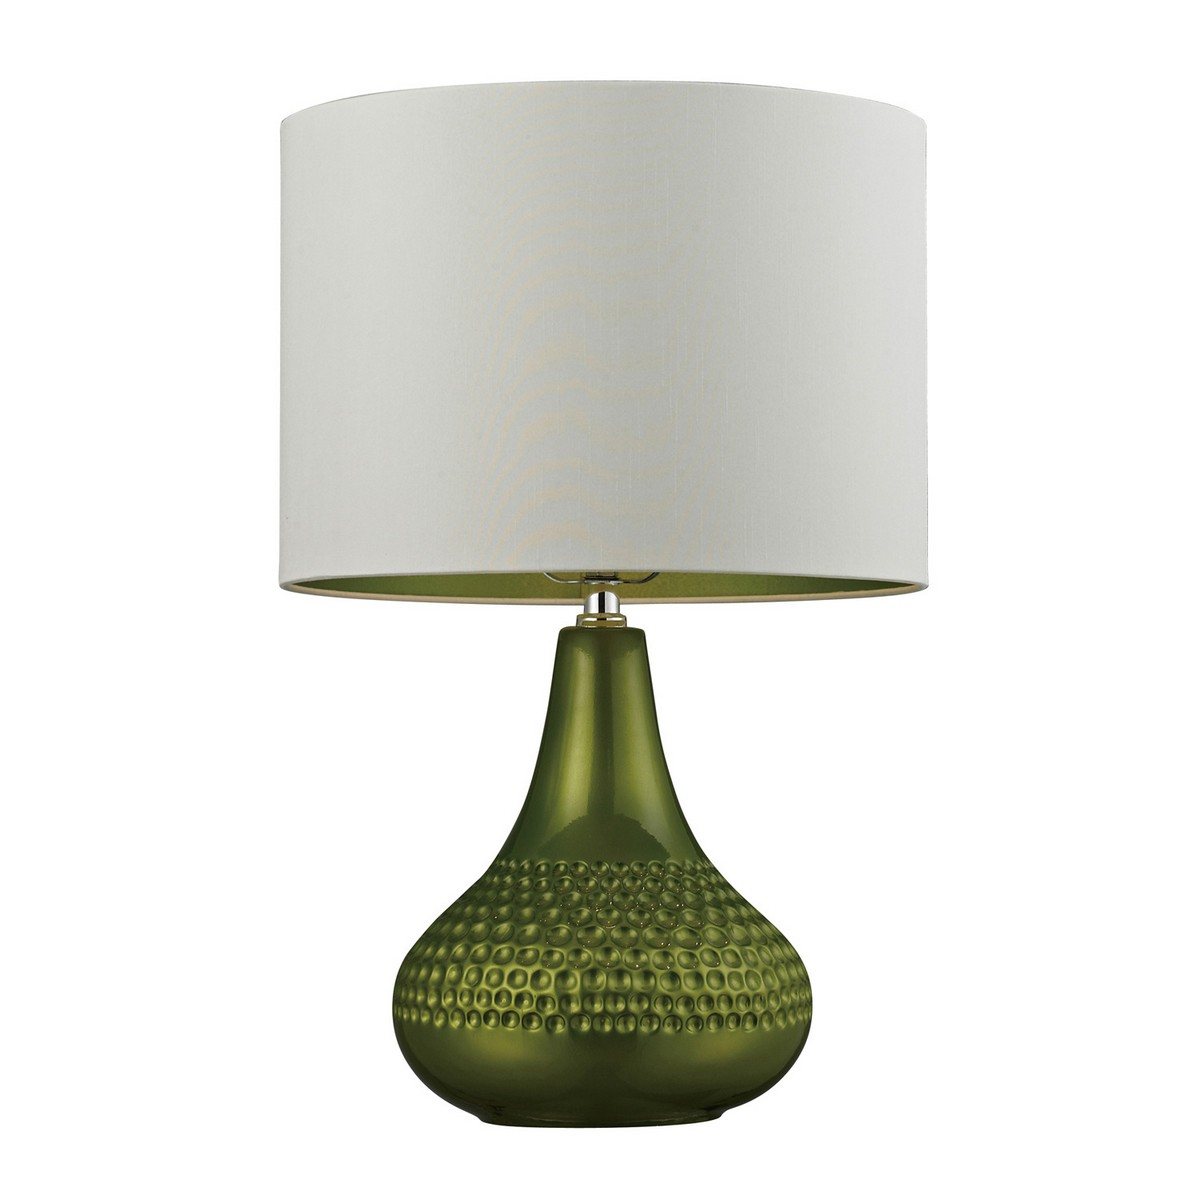 Elk Lighting D266 Table Lamp - Lime Green